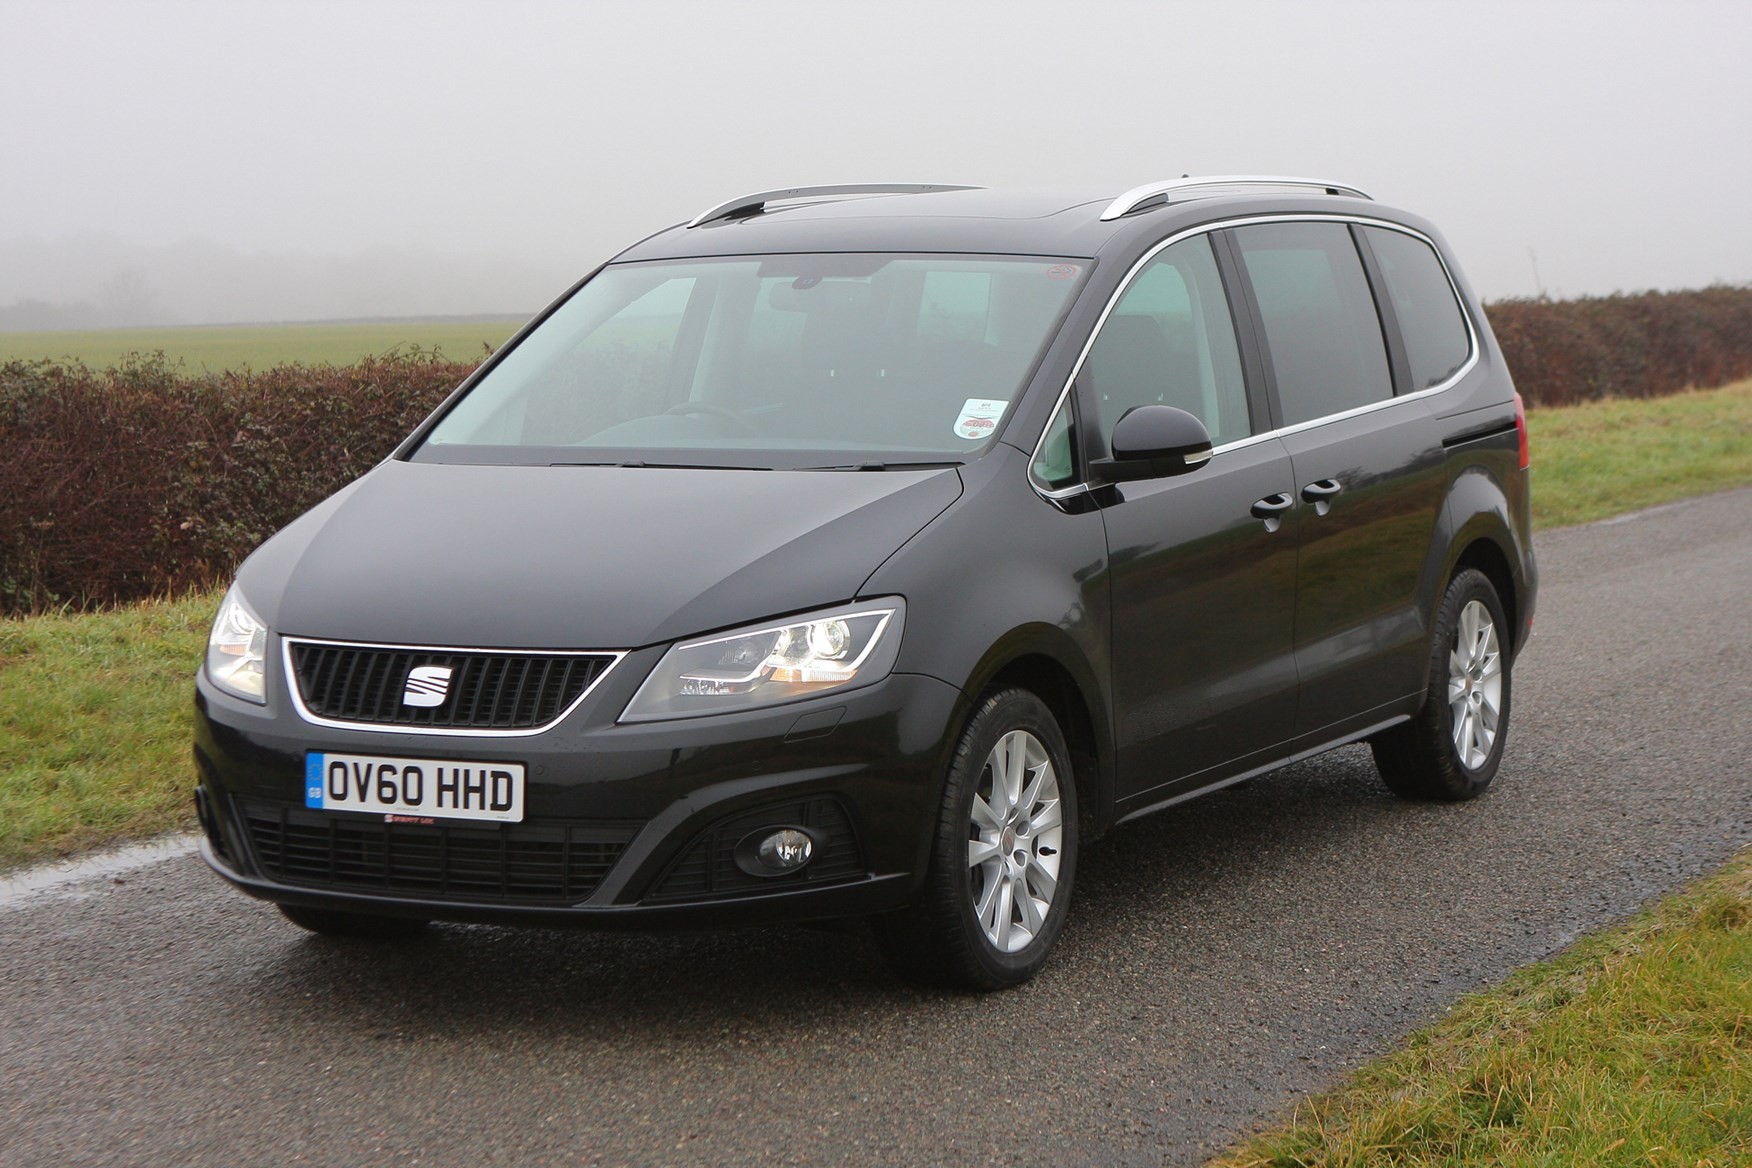 seat alhambra estate review 2010 parkers. Black Bedroom Furniture Sets. Home Design Ideas